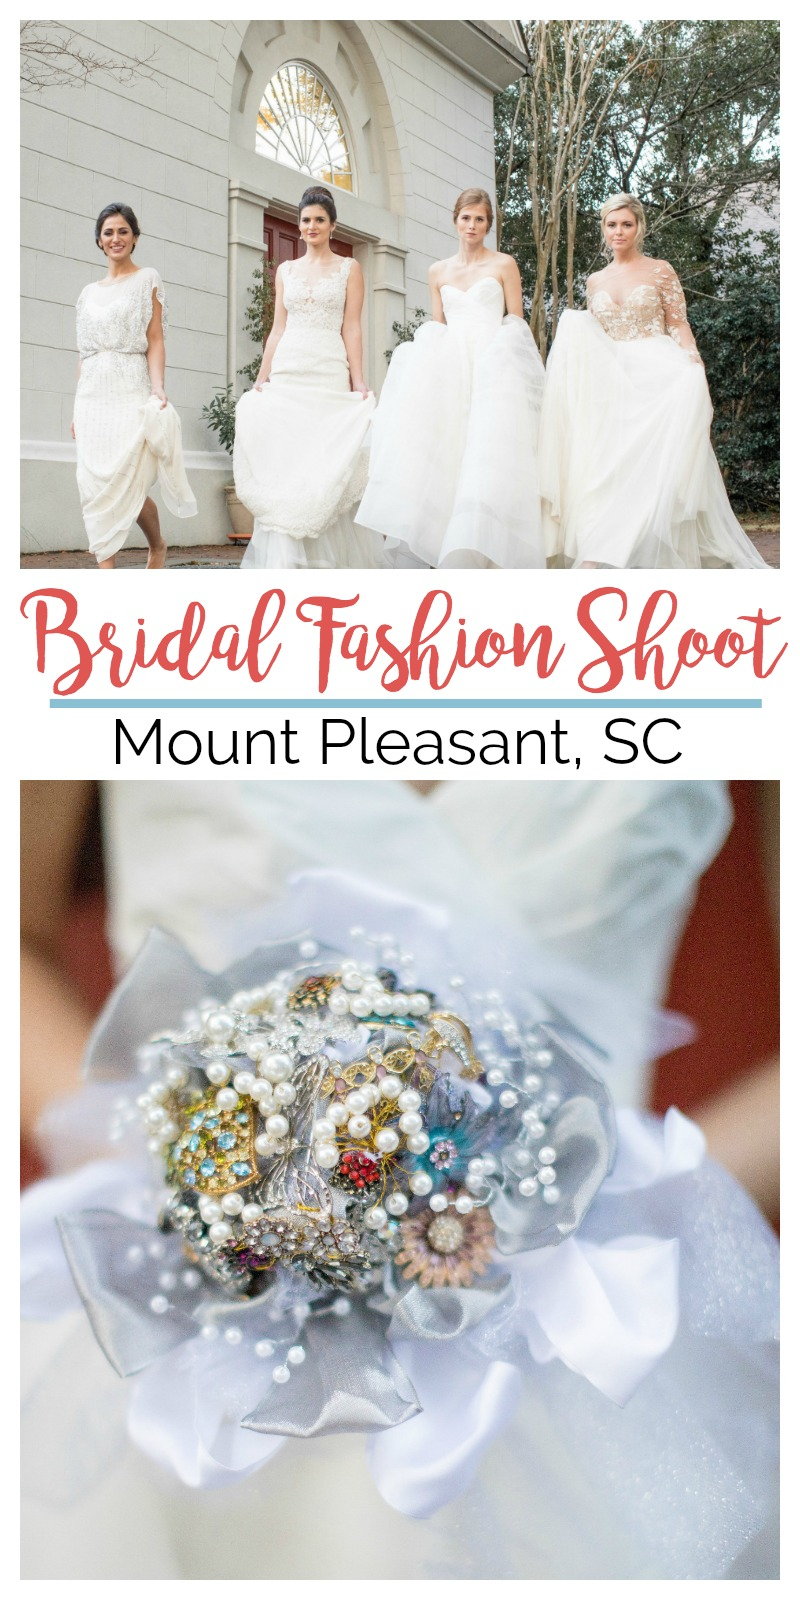 Wedding Inspiration: Bridal Fashion Shoot at Coleman Hall, Mount Pleasant, South Carolina | Palmetto State Weddings | Photos by Kelly Vann Calaway Photography